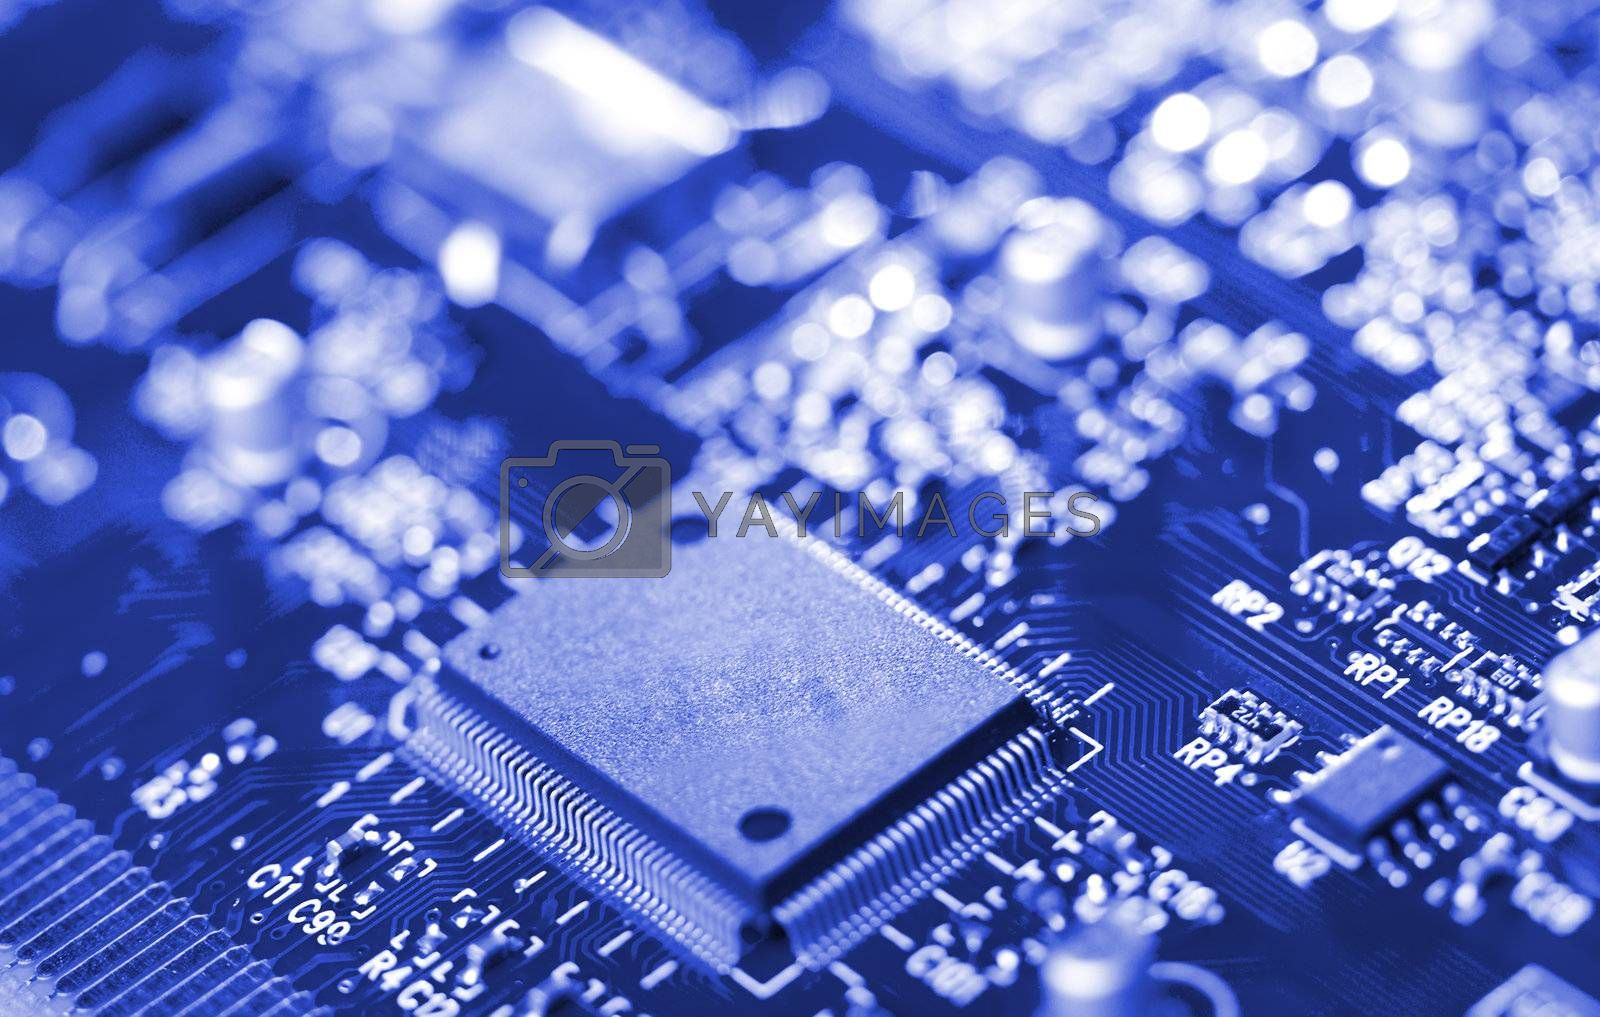 Royalty free image of close-up microchip on circuit board by Alekcey